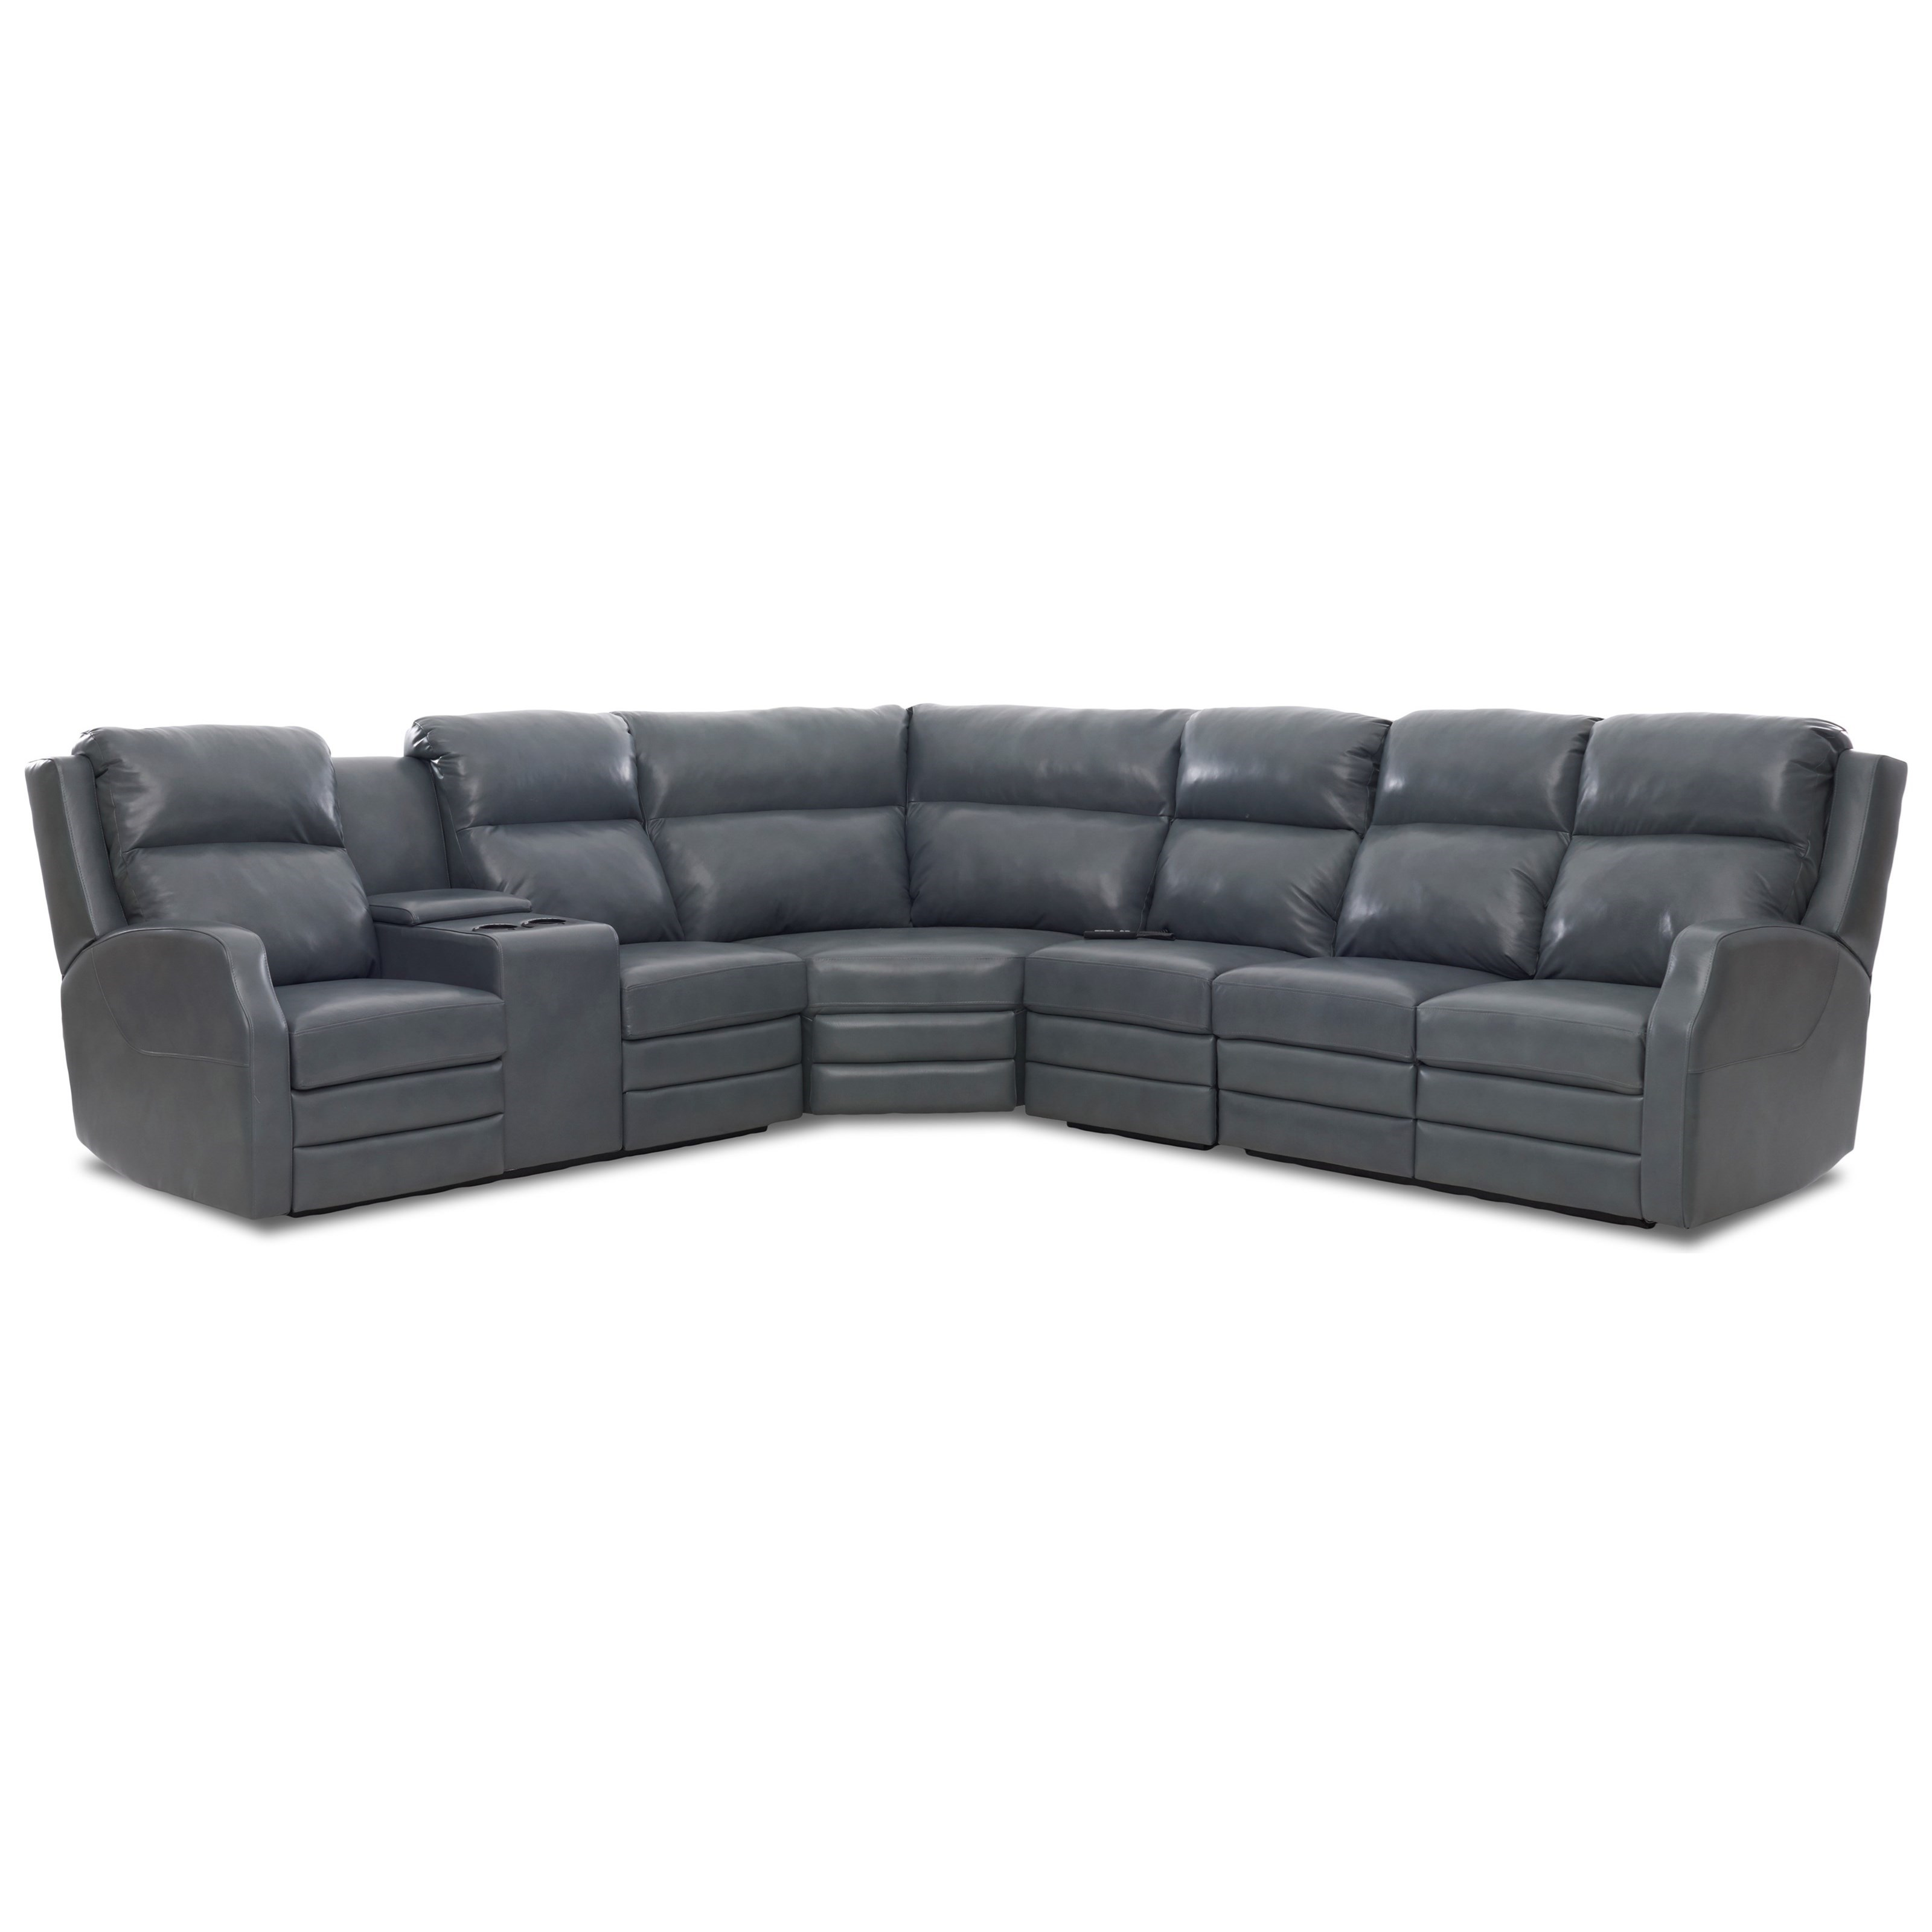 Four Seat Power Reclining Sectional Sofa with Power Headrests, Cupholder Storage Console, USB Charging Ports